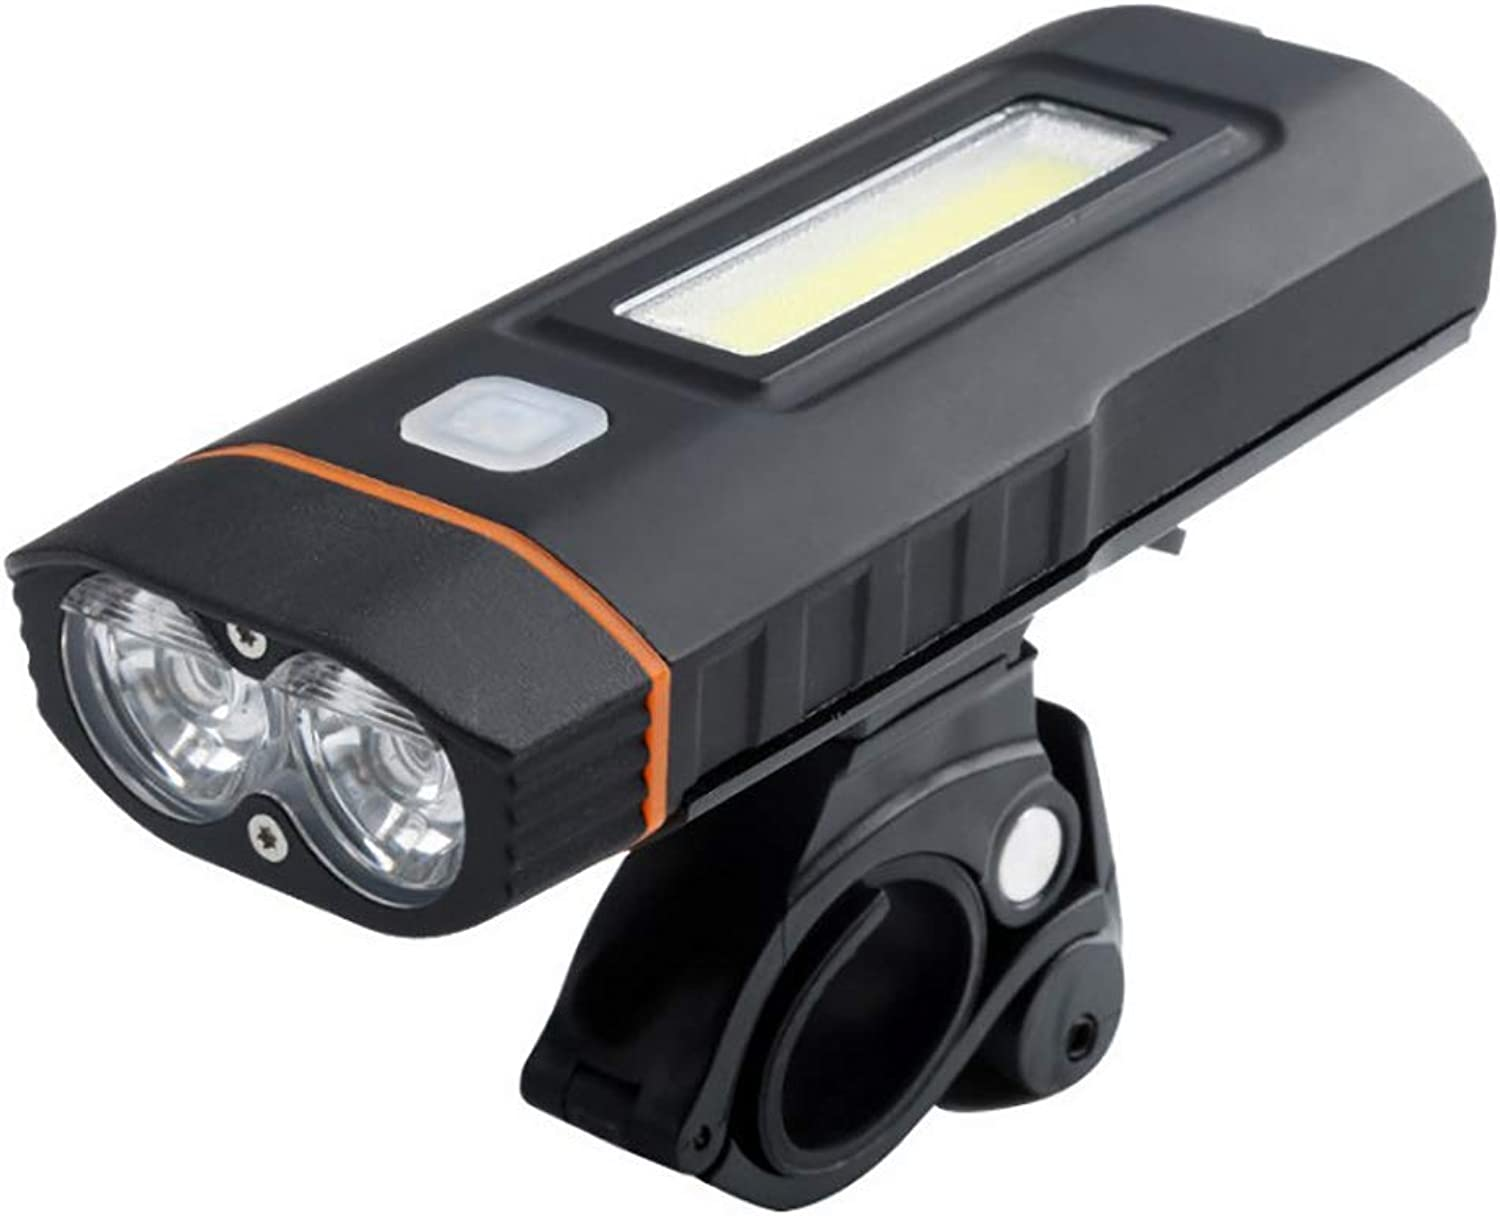 USB Rechargeable Bicycle Glare Flashlight Has 160 Degree redatable 3 Modes Suitable for Night Lighting Warning Running Riding Fishing Cave to Explore Outdoor 1000 Lumens